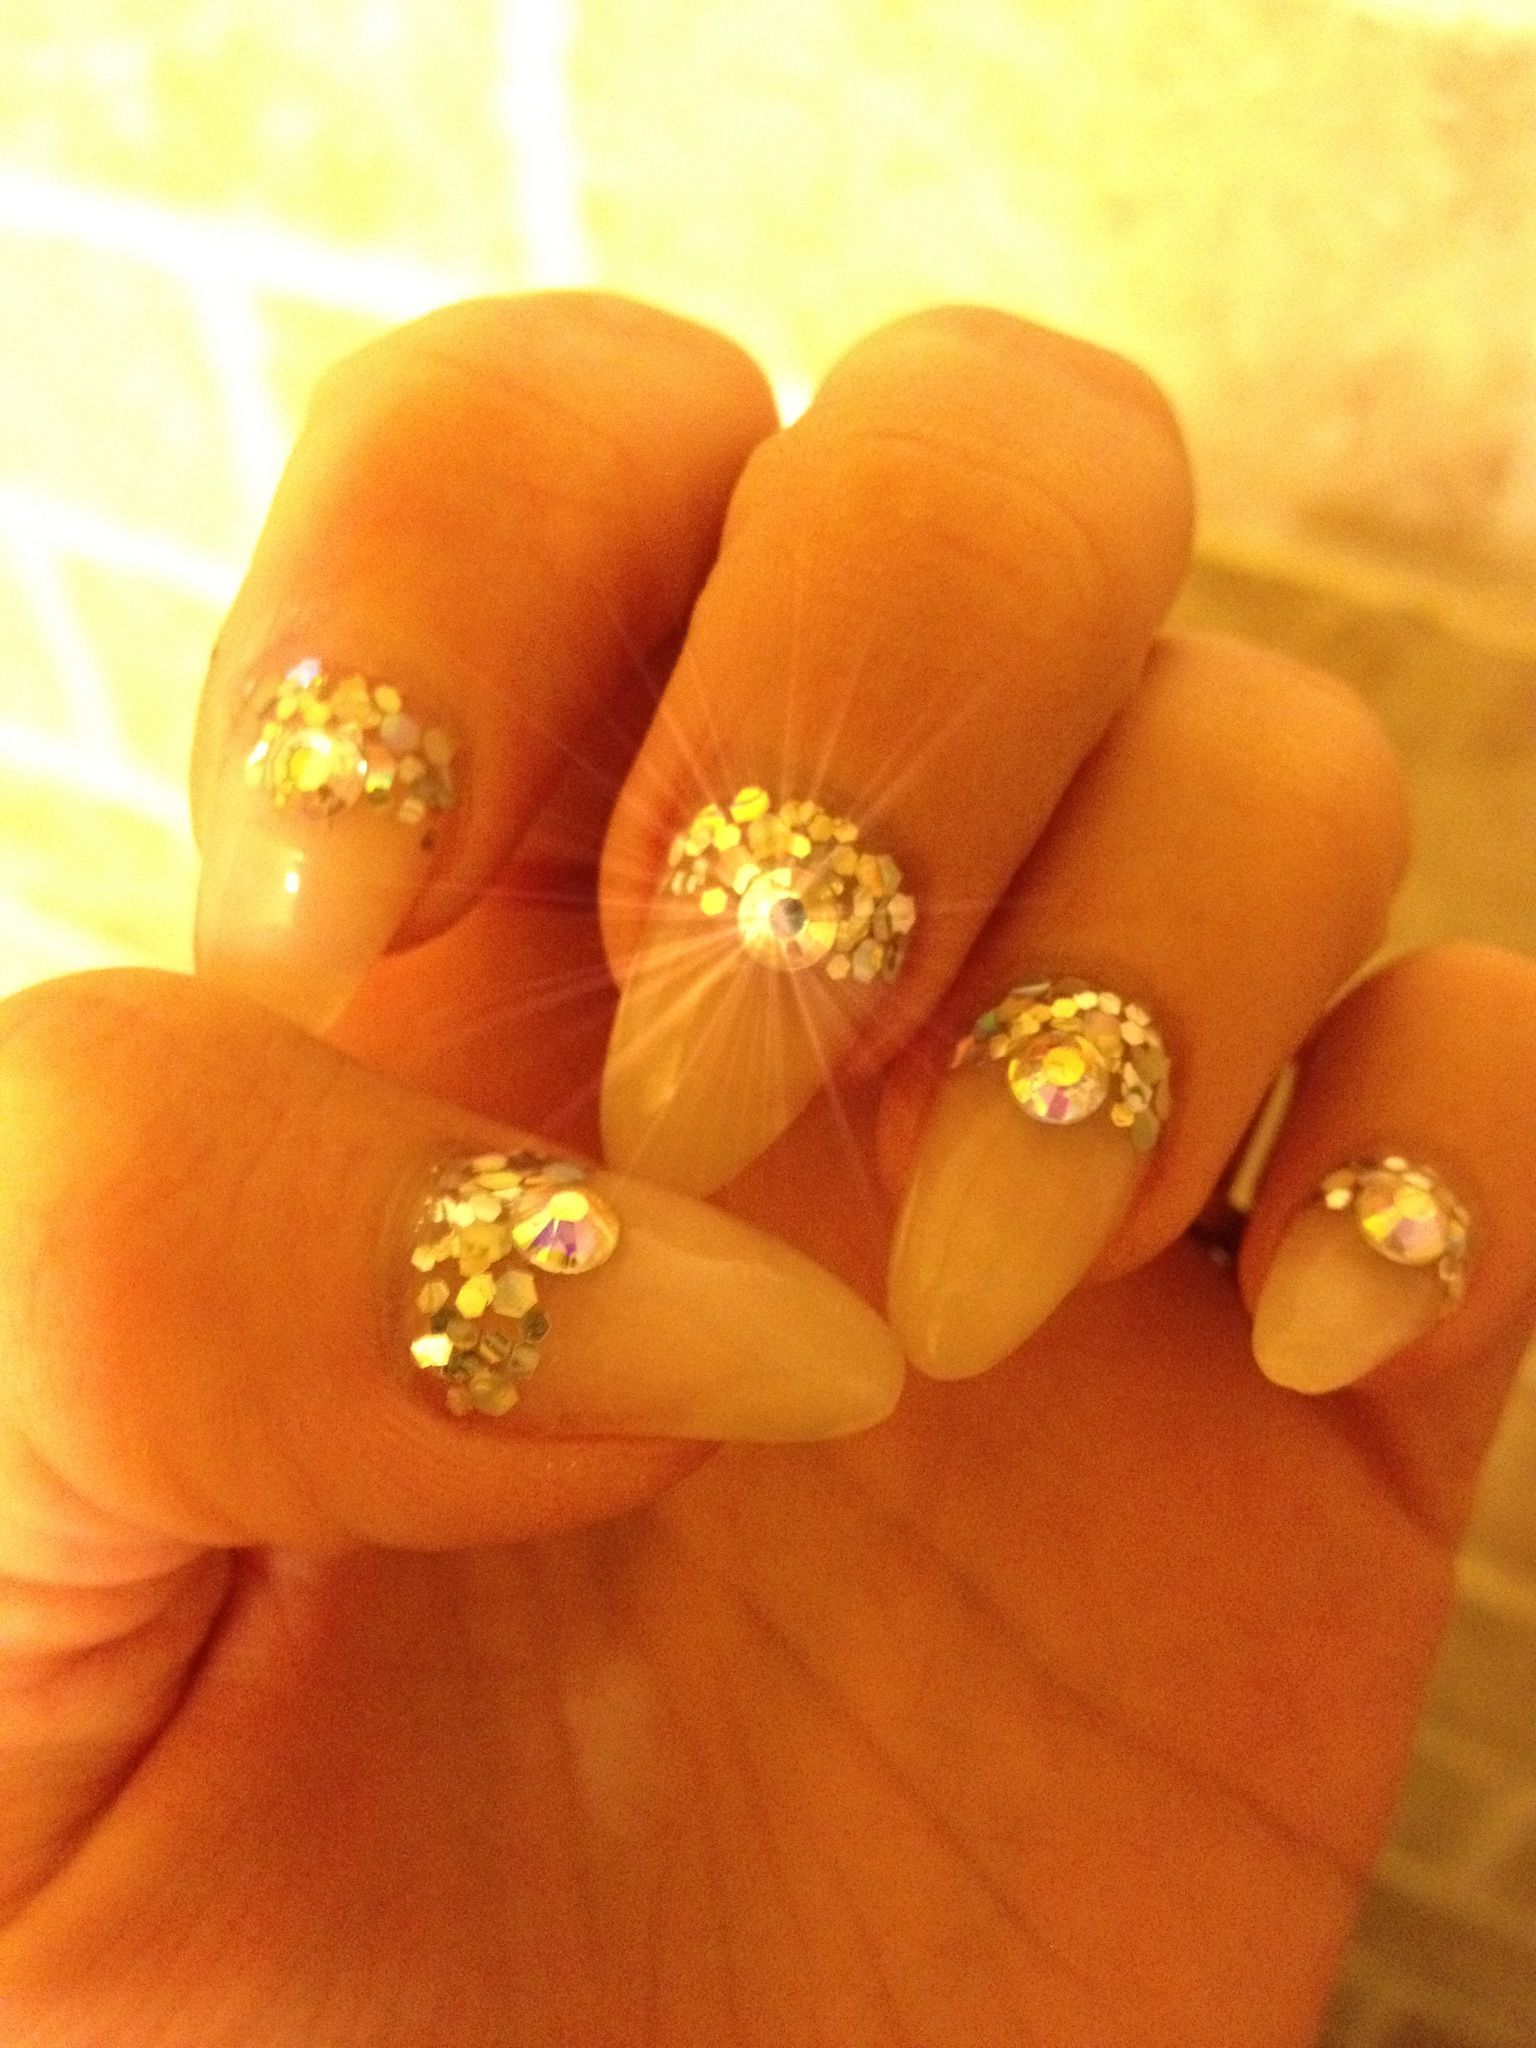 almond nails with bling nail